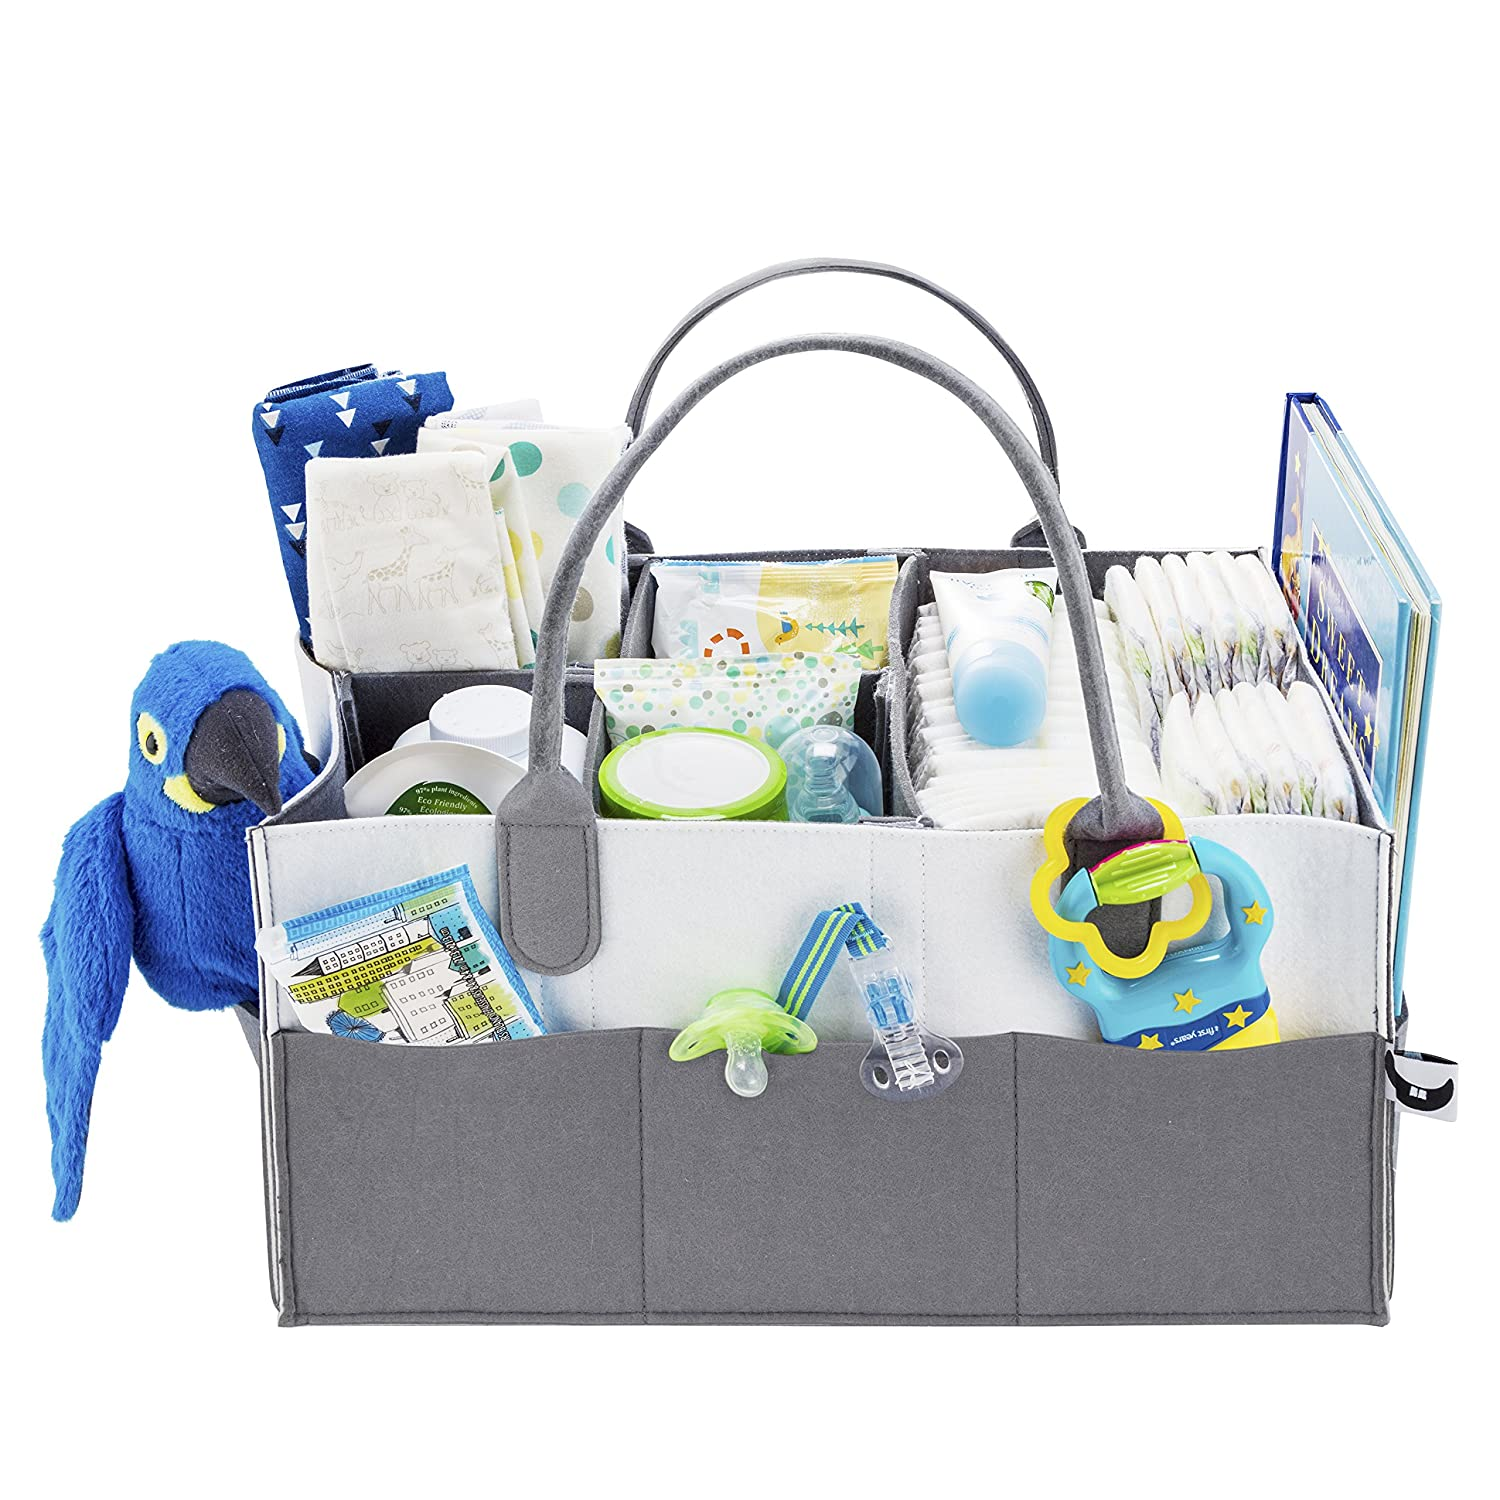 Baby Diaper Caddy Organizer - Gift Registry for Baby Shower Must Haves | Large Baby Essentials Organizer | Cute Basket for Baby Gifts for Newborn Boys Girls Twins | Versatile Stylish Design 4 Moms Happy 4 Life